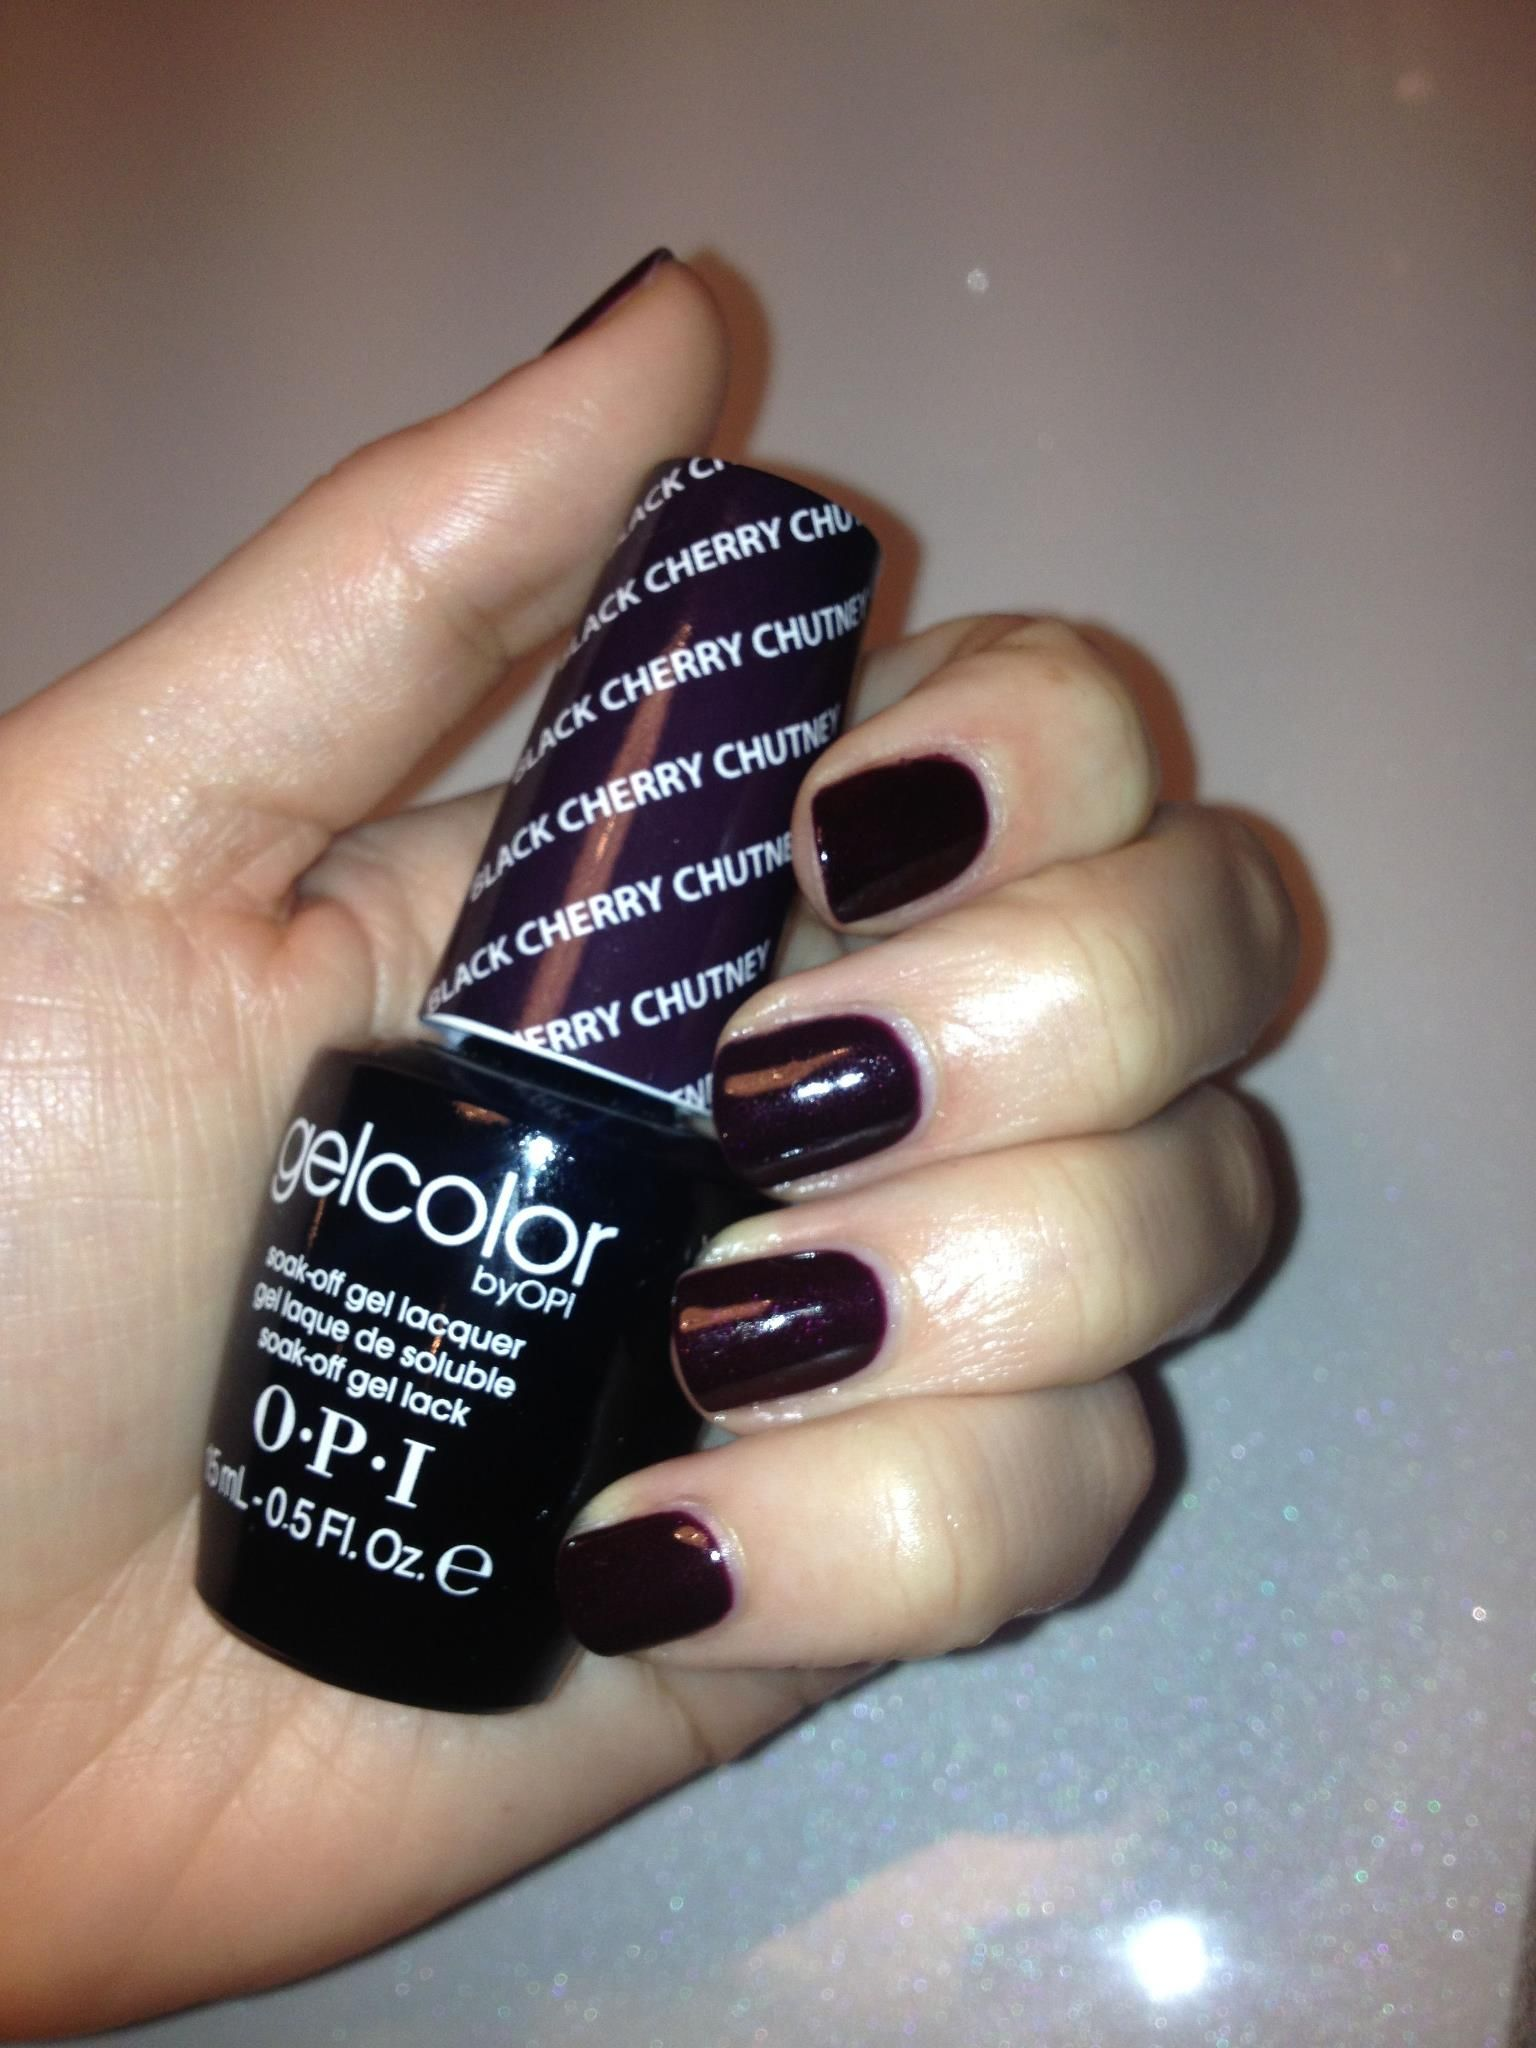 black cherry chutney opi gel - Google Search | Fashion ...